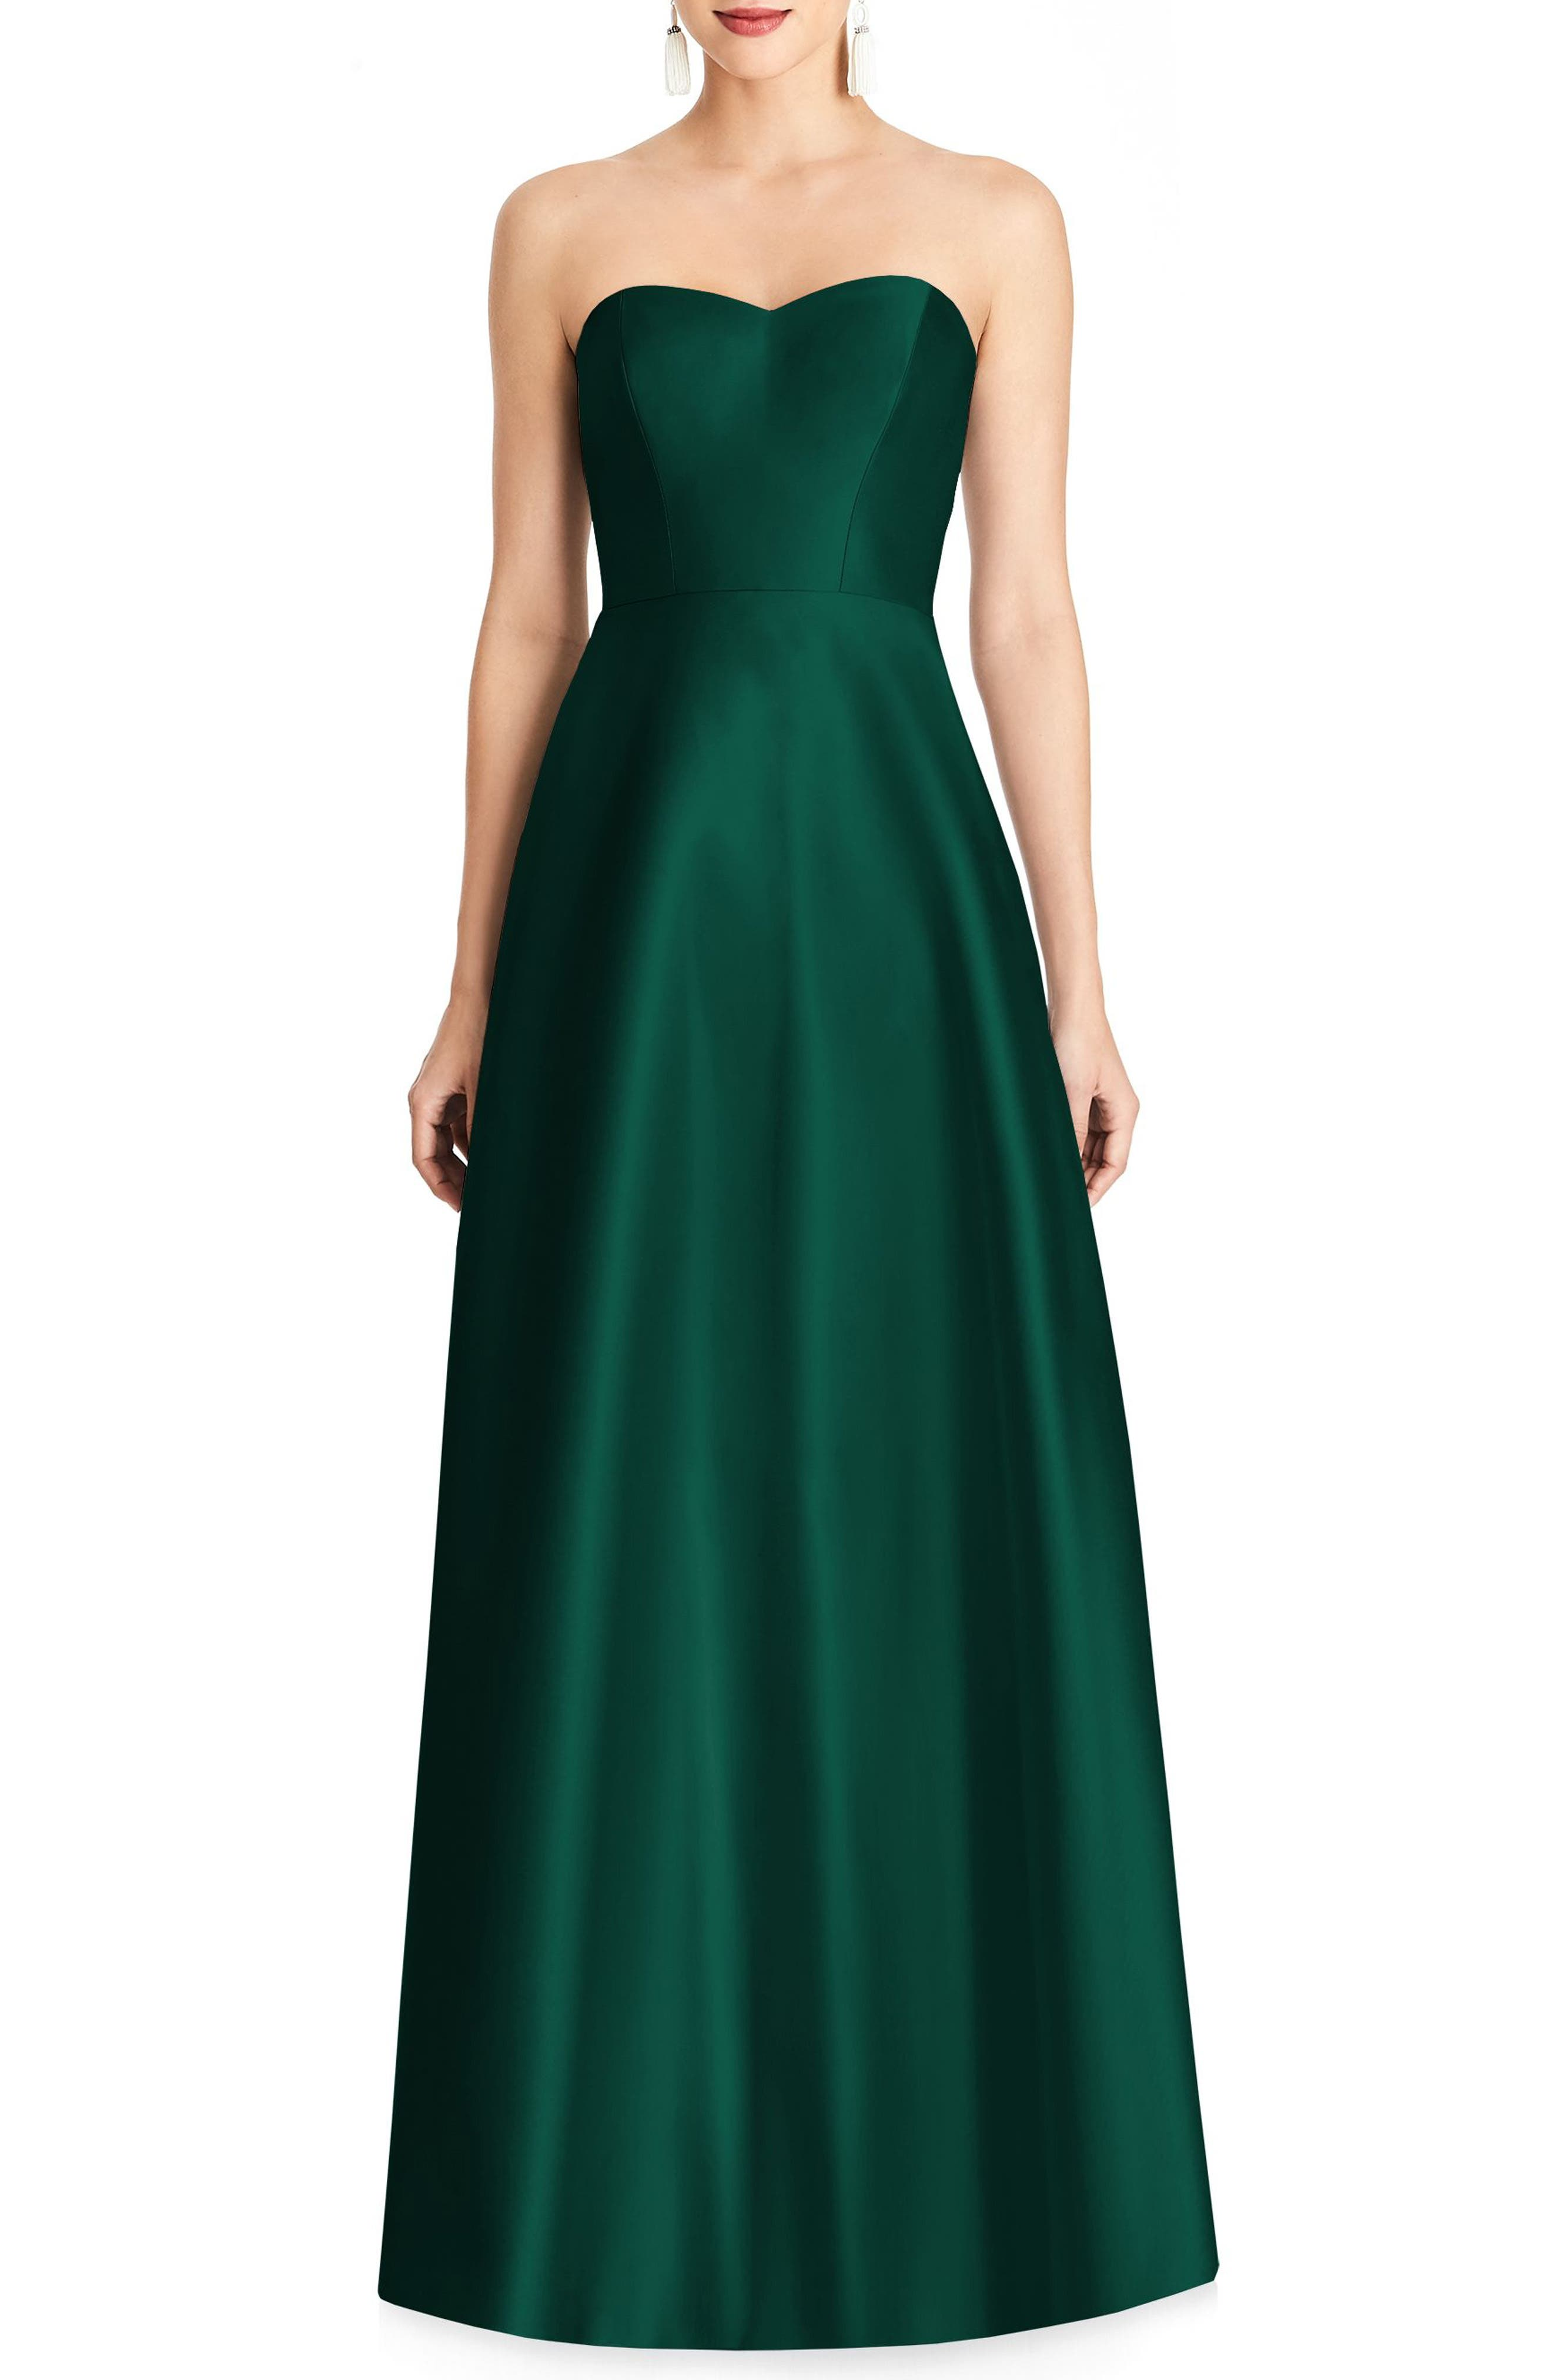 ALFRED SUNG Strapless Sateen Gown, Main, color, HUNTER